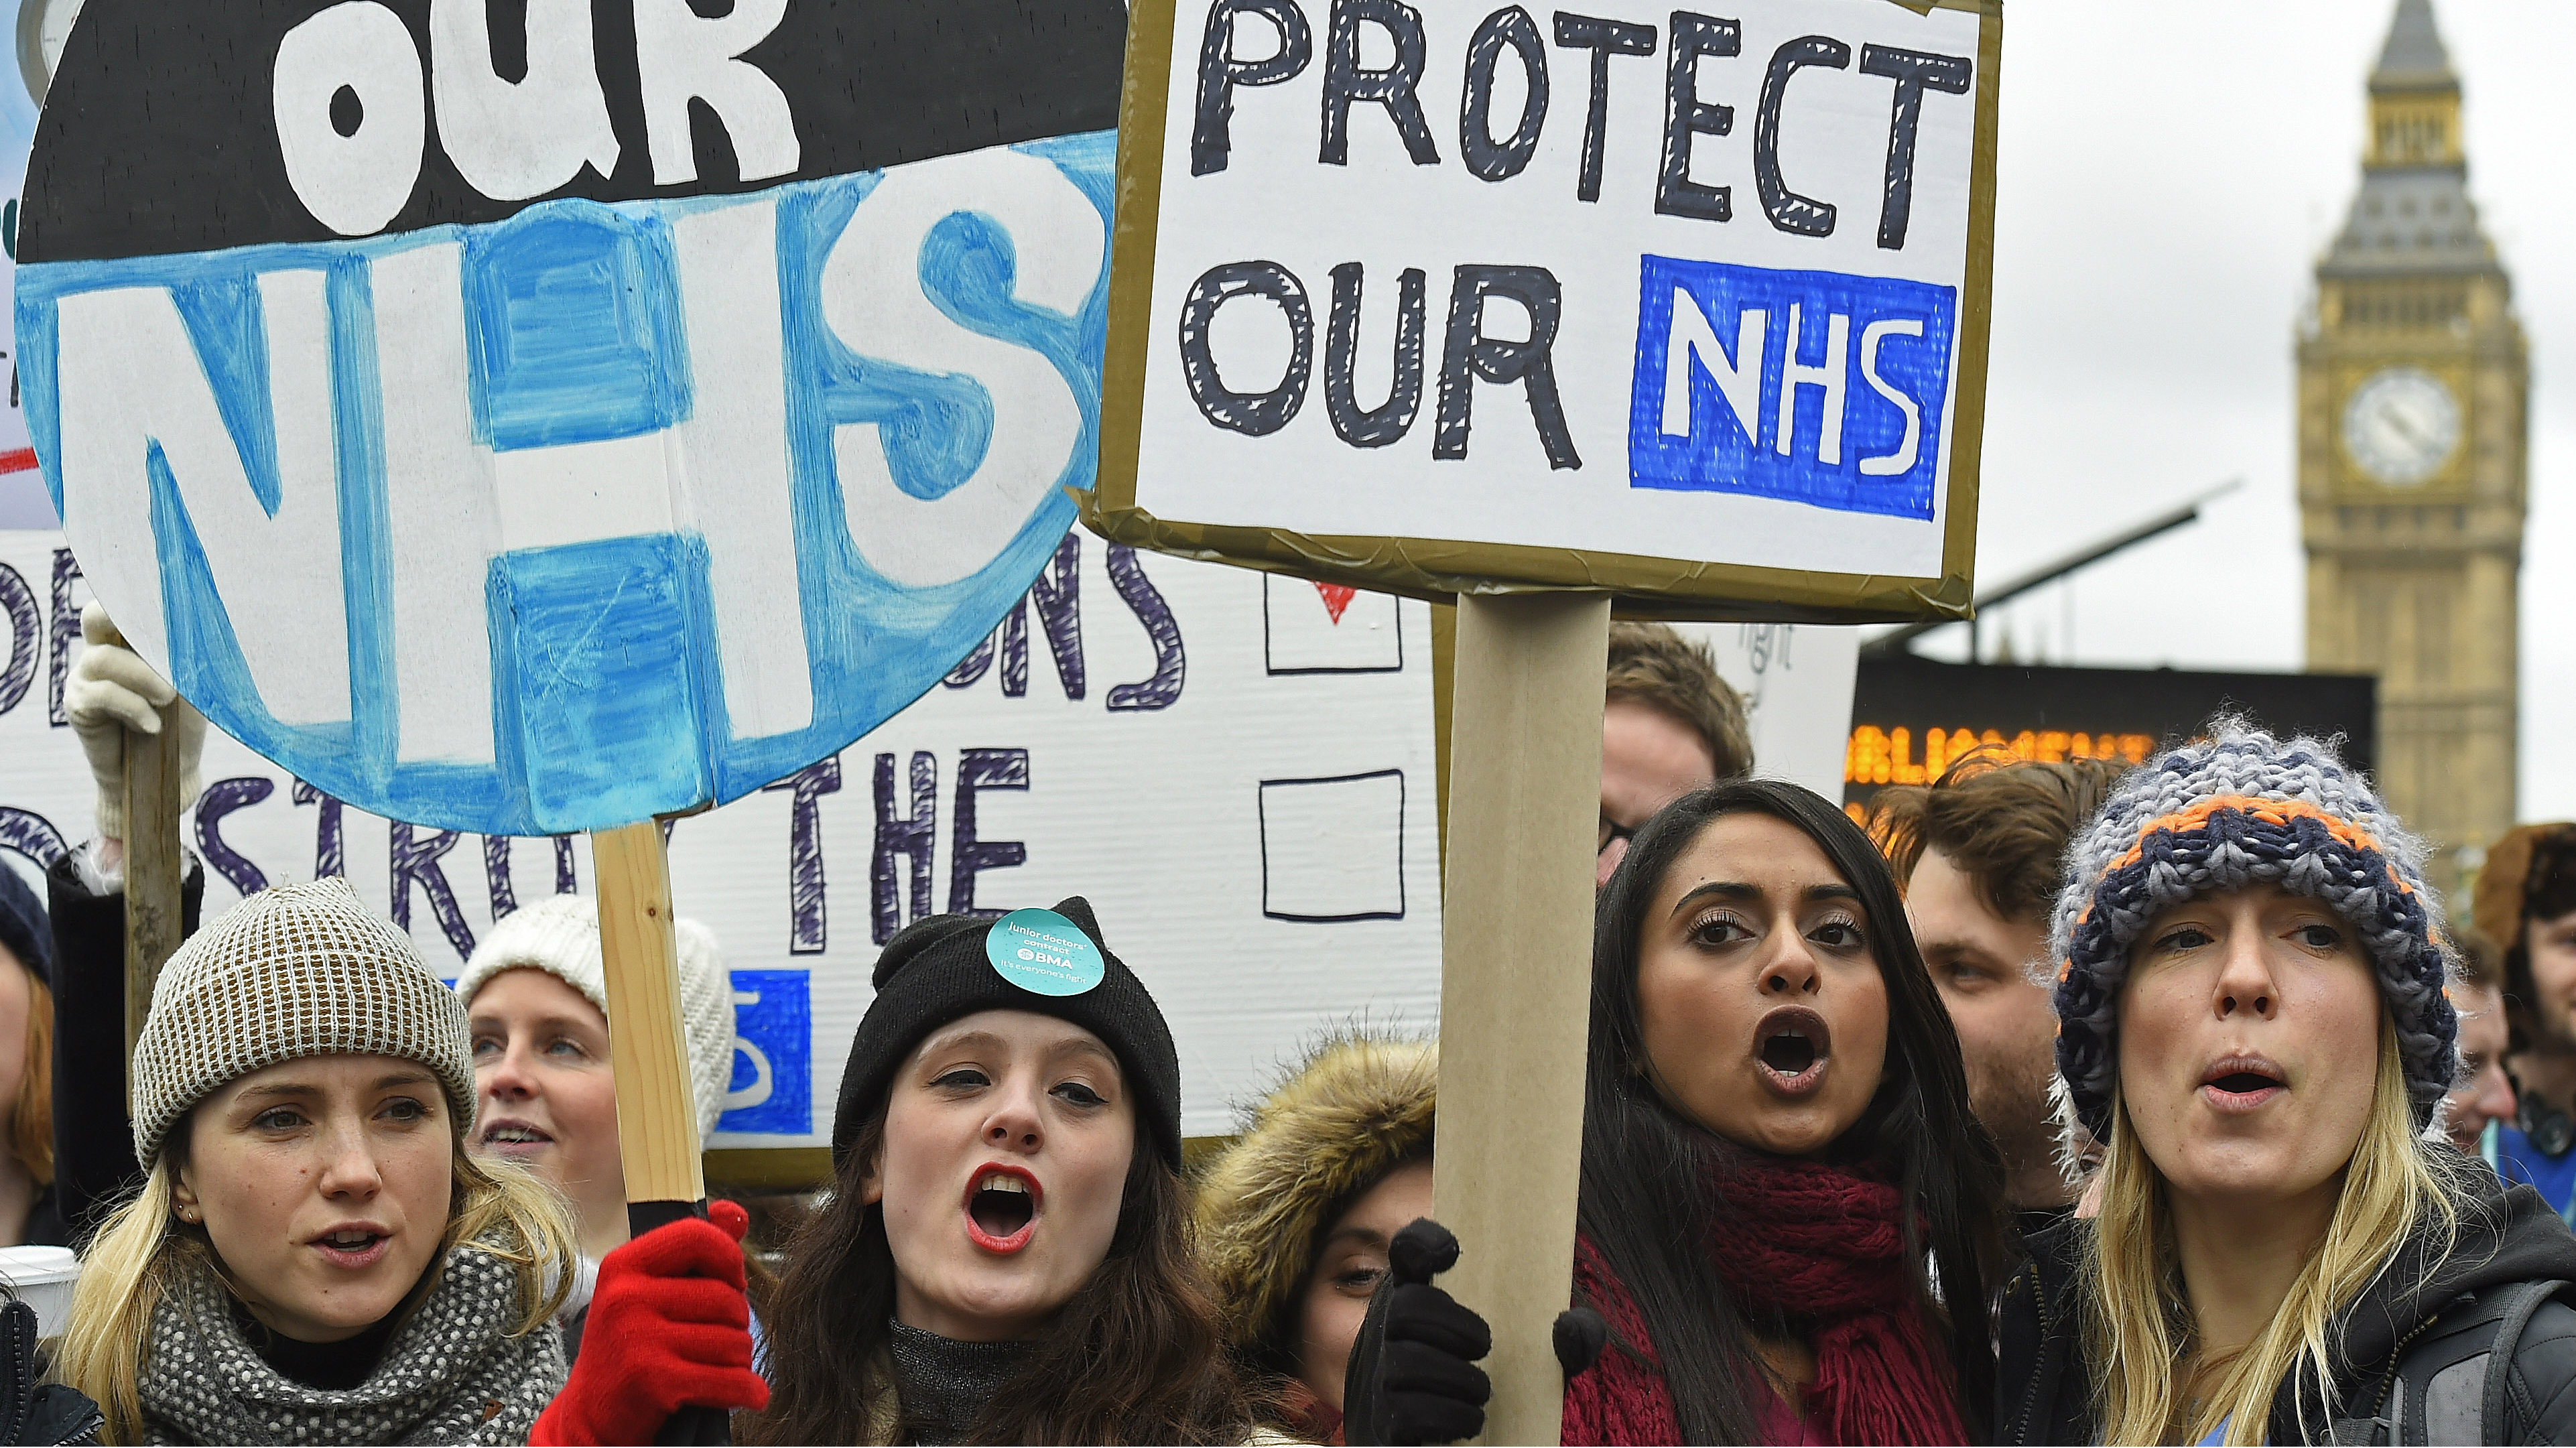 Junior doctors and NHS staff hold placards during a strike outside St Thomas' Hospital in London, Britain February 10, 2016. English doctors staged their second 24-hour strike on Wednesday over government plans to reform pay and conditions for working anti-social hours, in a move health chiefs have warned could put patients' lives at risk.